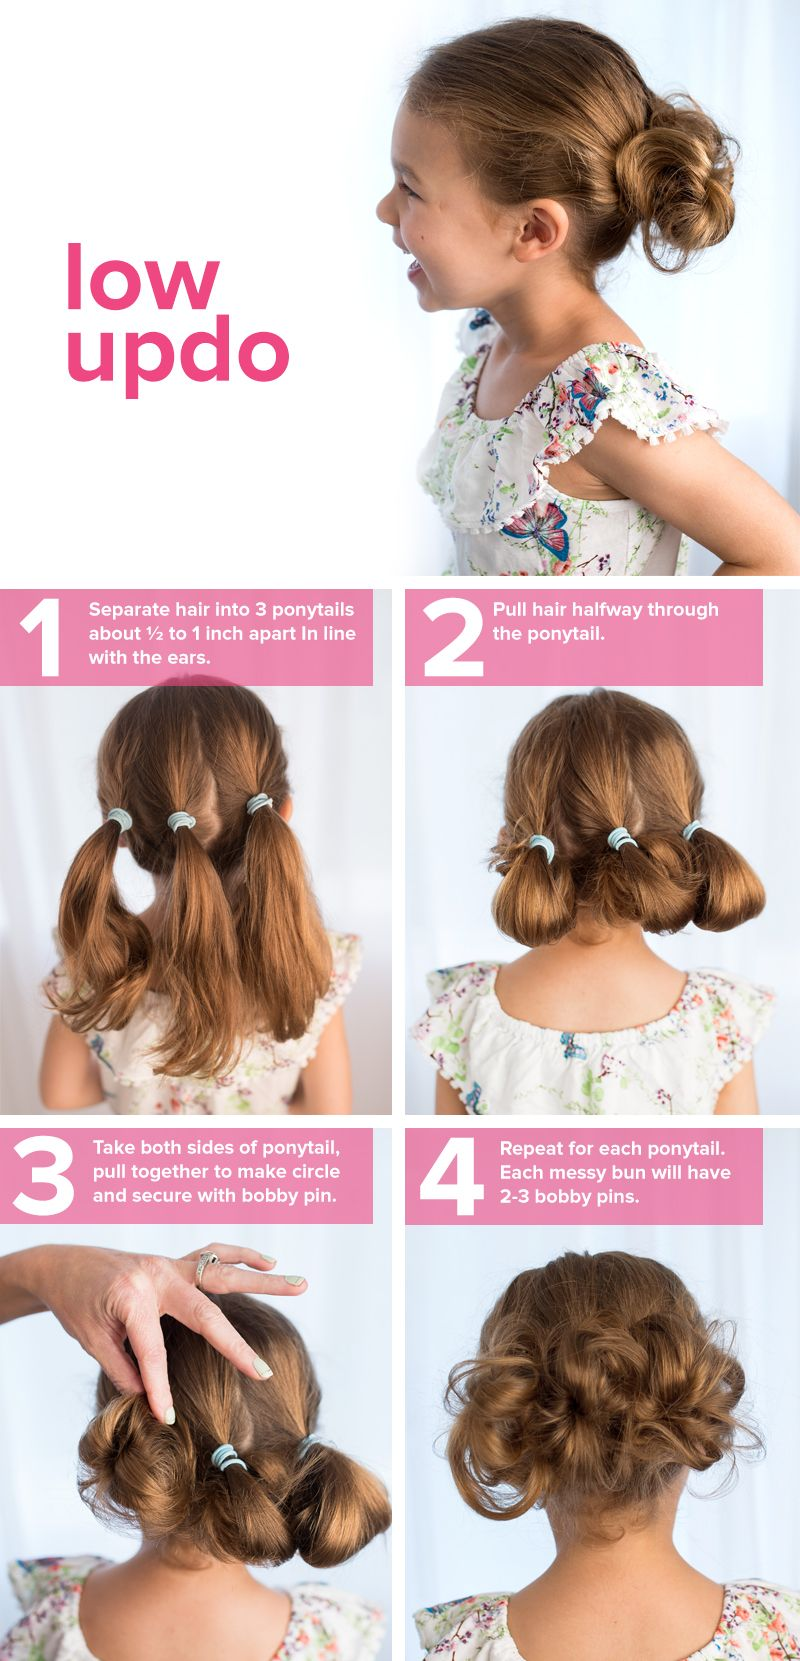 Quick And Easy Hairstyles 5 Fast Easy Cute Hairstyles For Girls  Low Updo Updo And Kids S